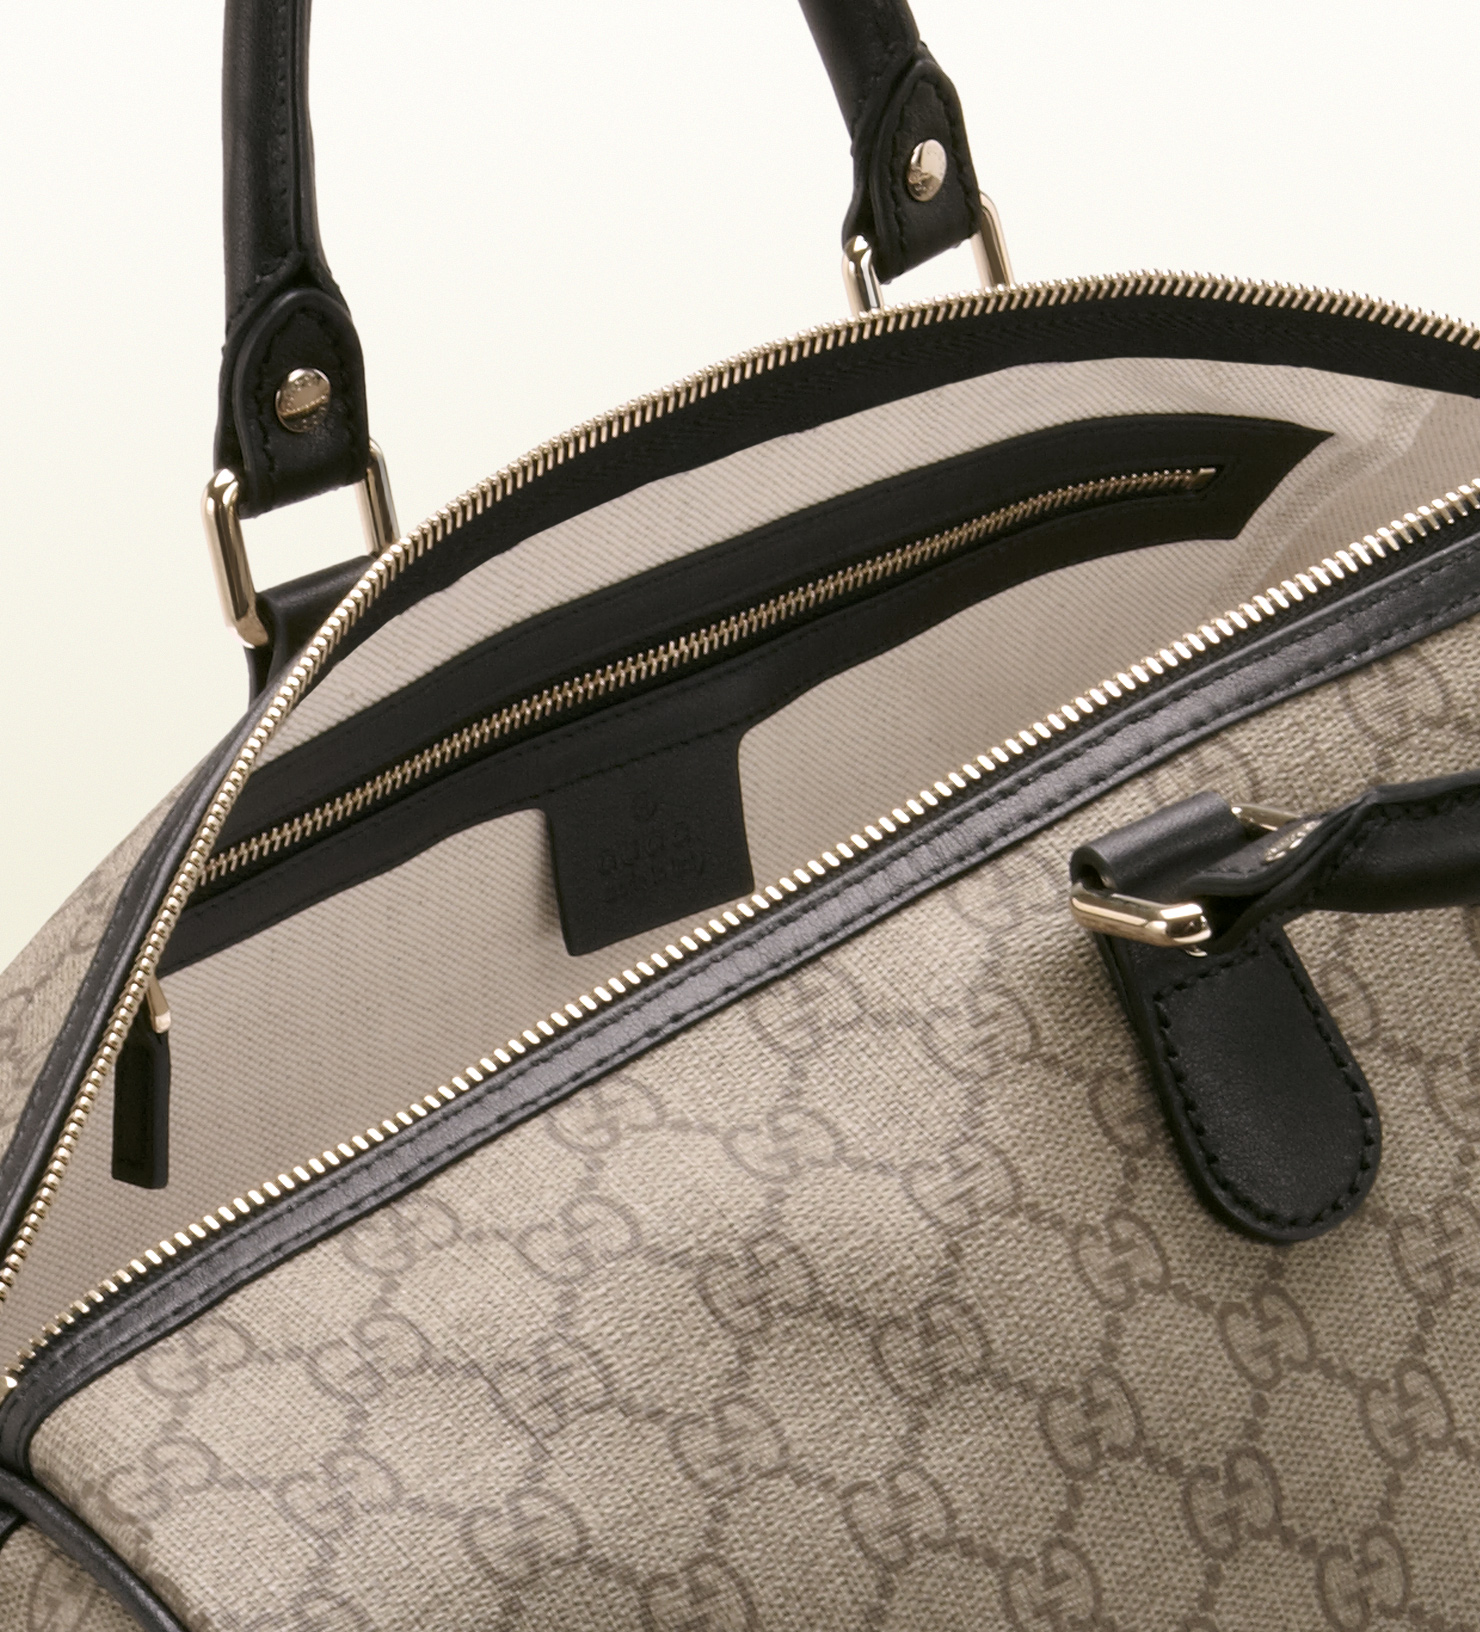 497412d482f3 Gucci Italy Gg Flag Collection Duffle Bag in Gray for Men - Lyst